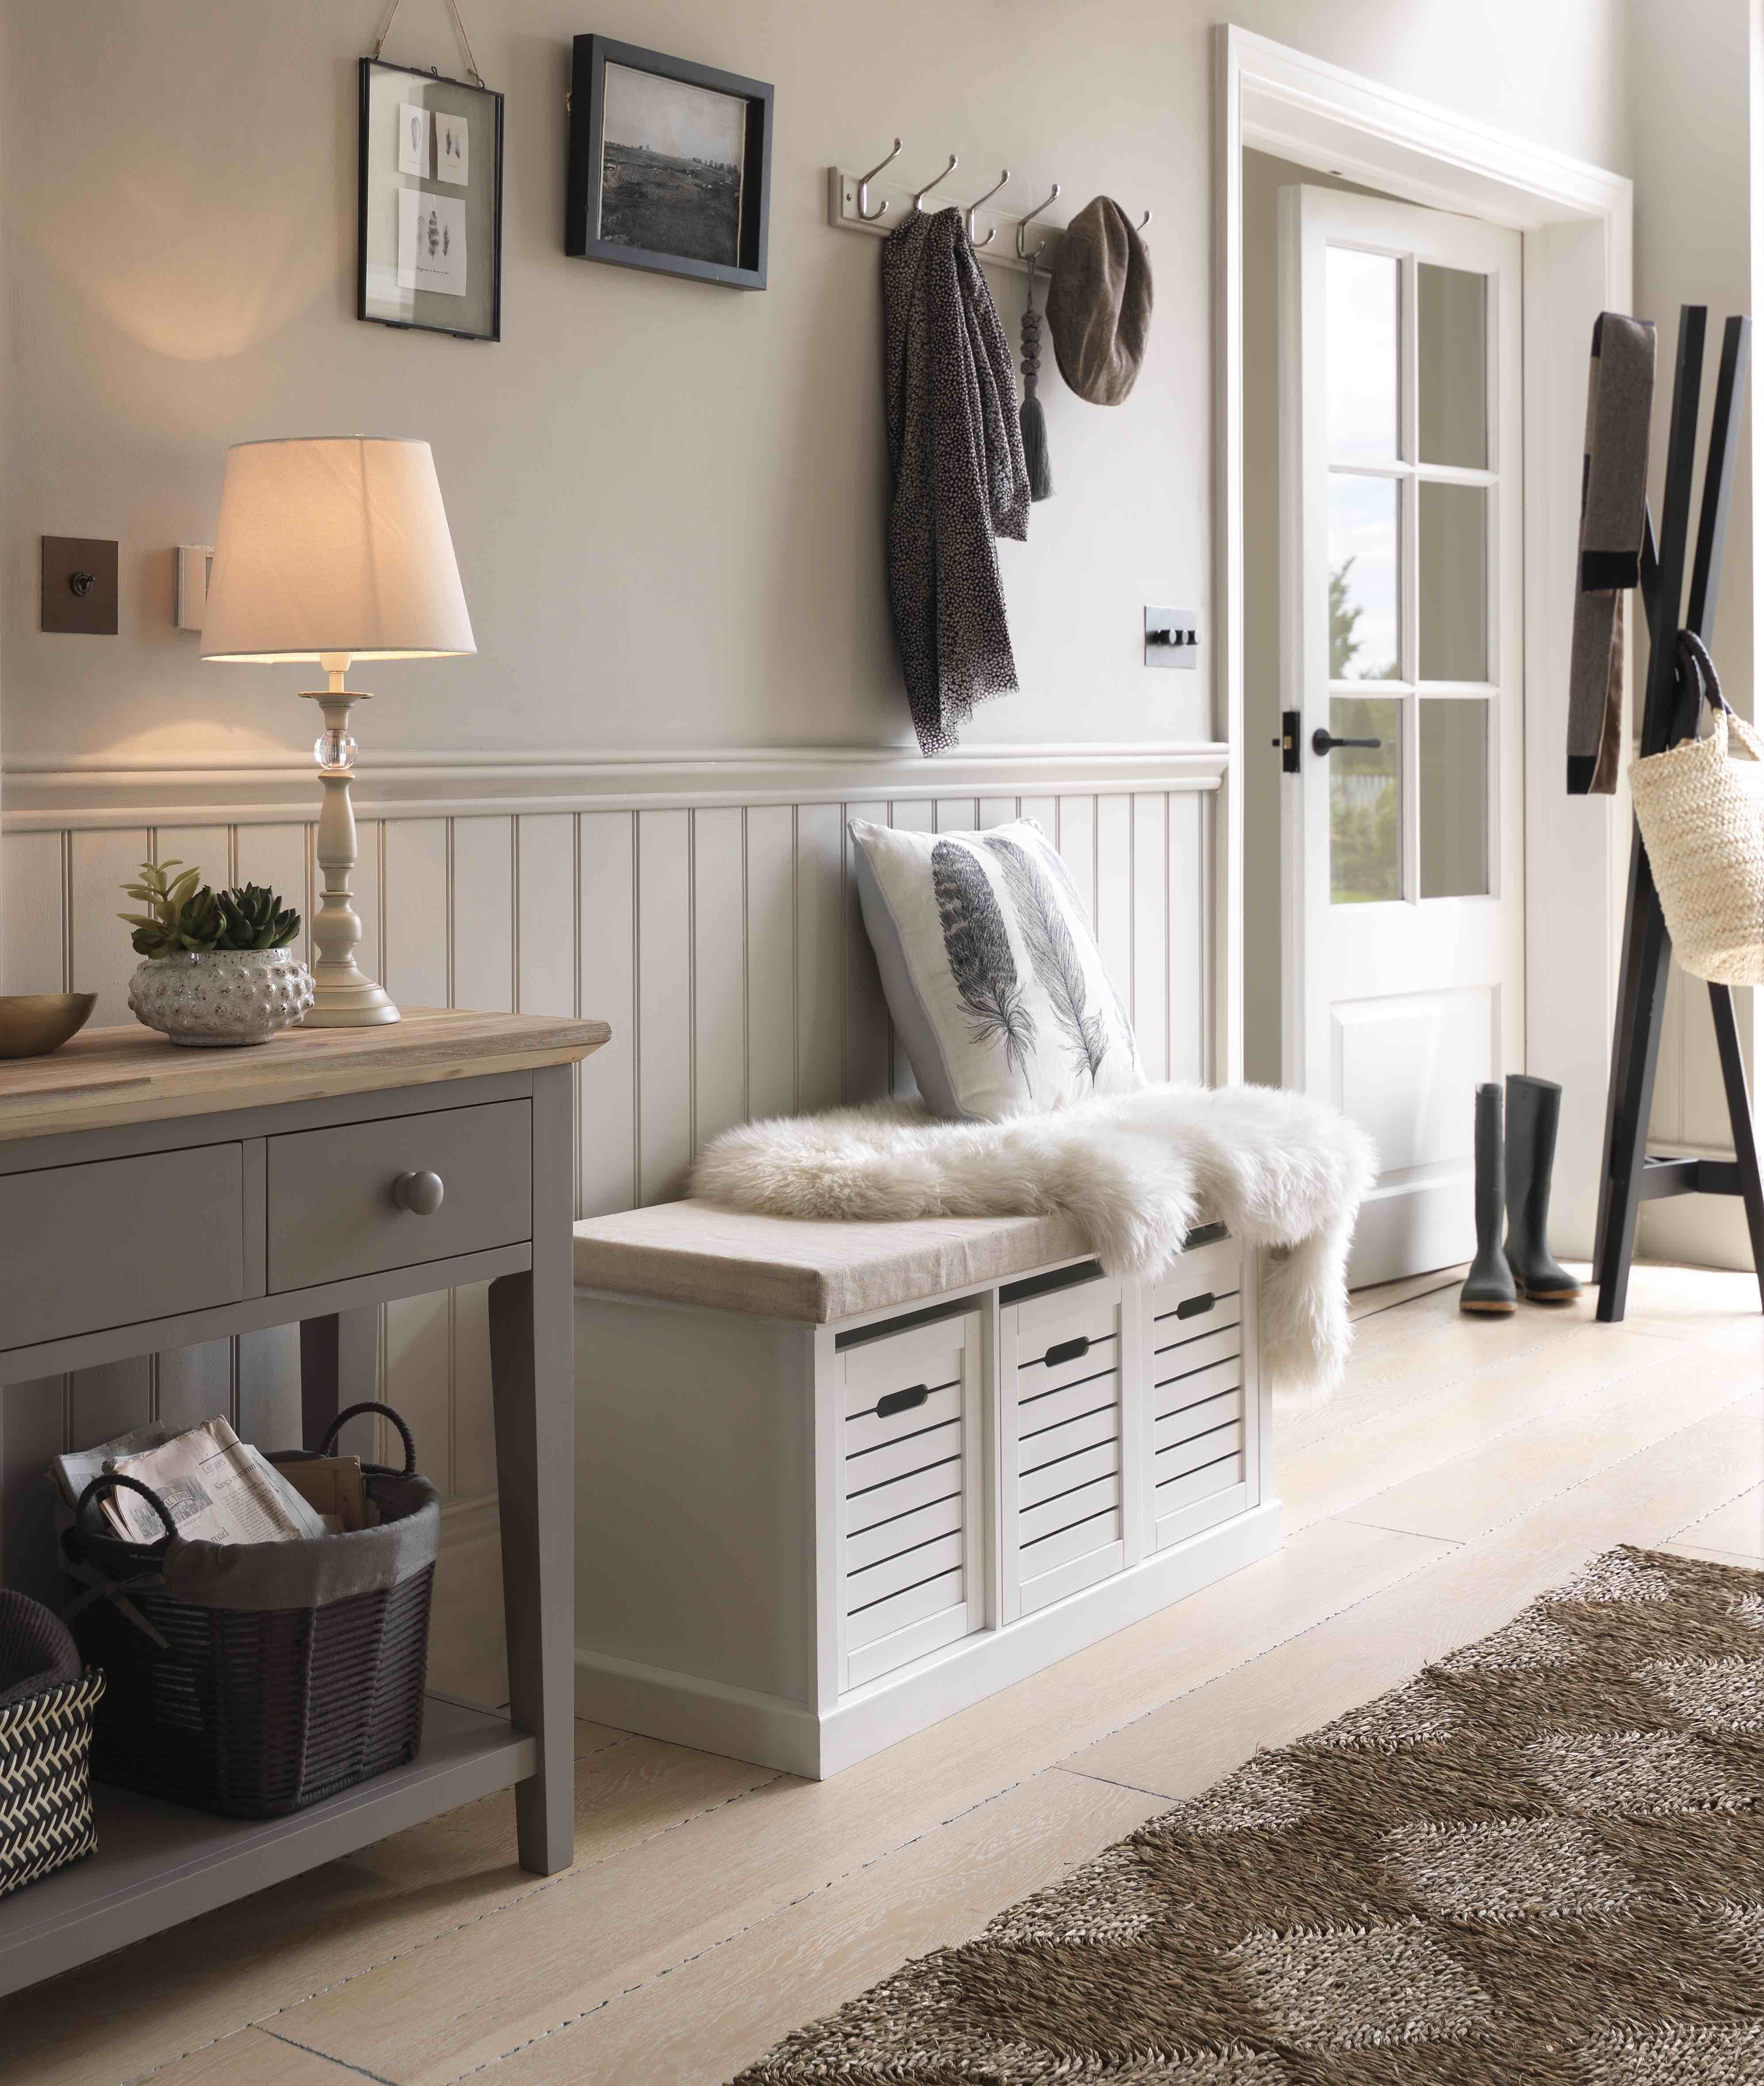 Hallway storage argos  The best kind of storage simply blends in to your décor Subtle